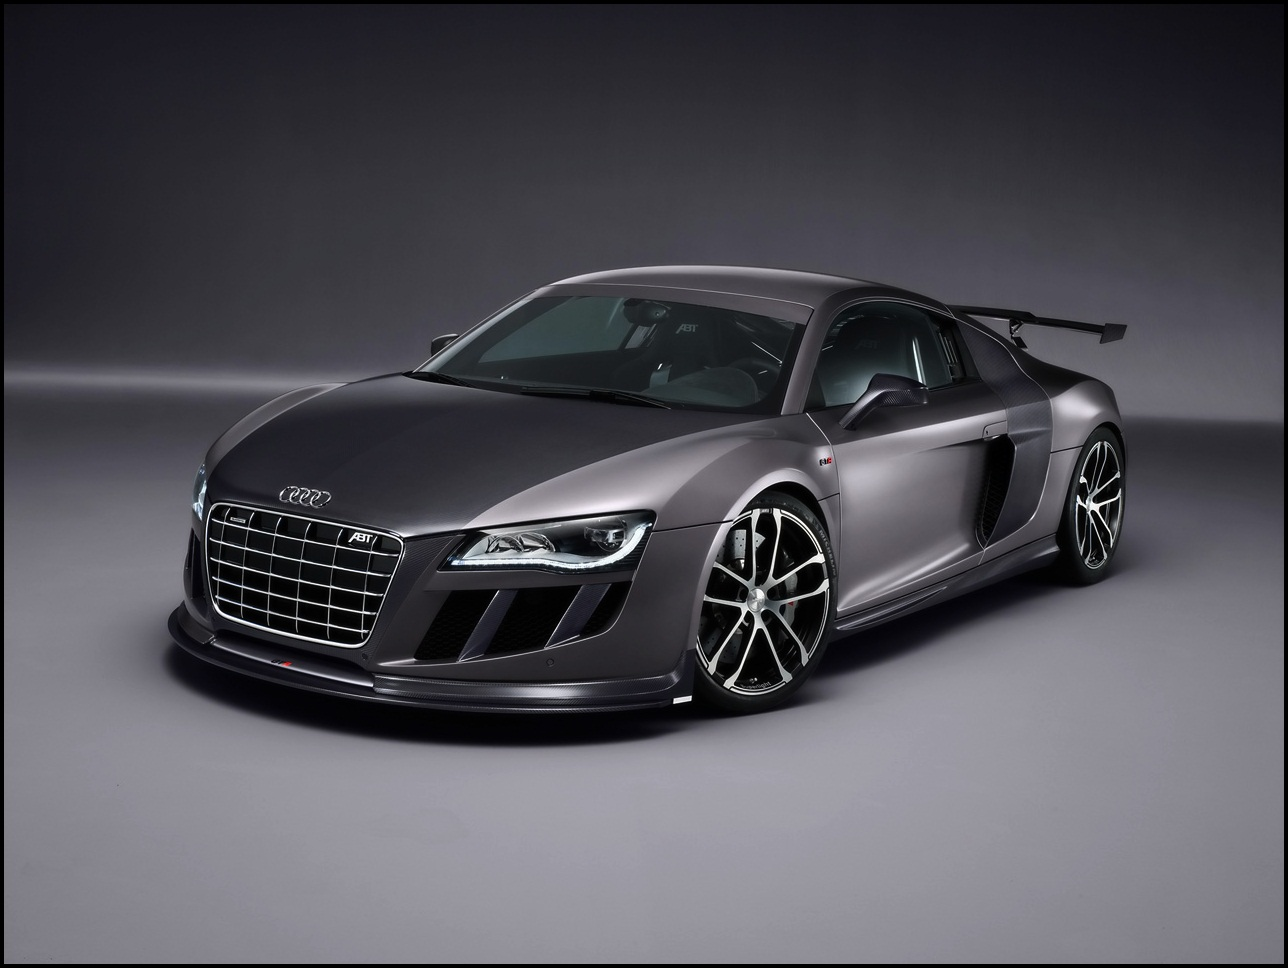 Most Expensive Audi Cars In The World Aluxcom - Most expensive audi sports car